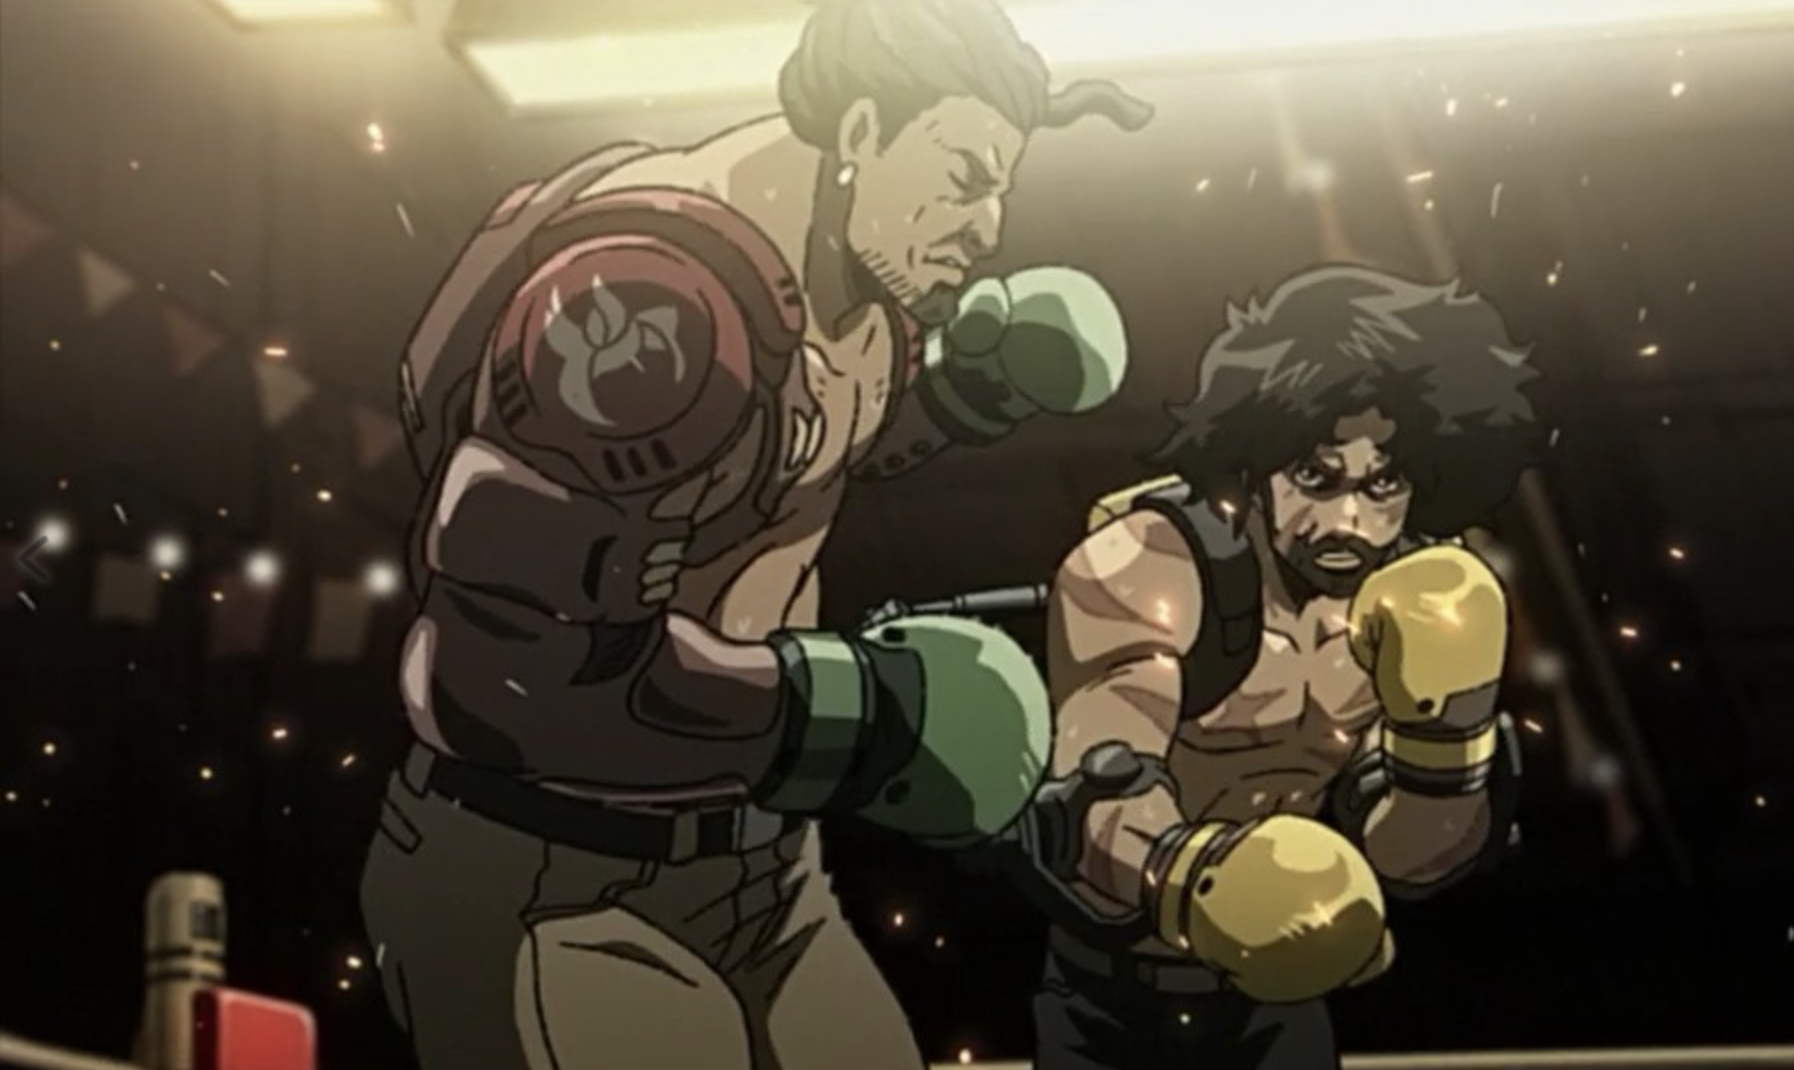 Is Nomad: Megalo Box Season 2 on Crunchyroll, Netflix, Hulu, or Funimation in English Sub or Dub? Where to Watch and Stream the Latest Episodes for Free Online 4